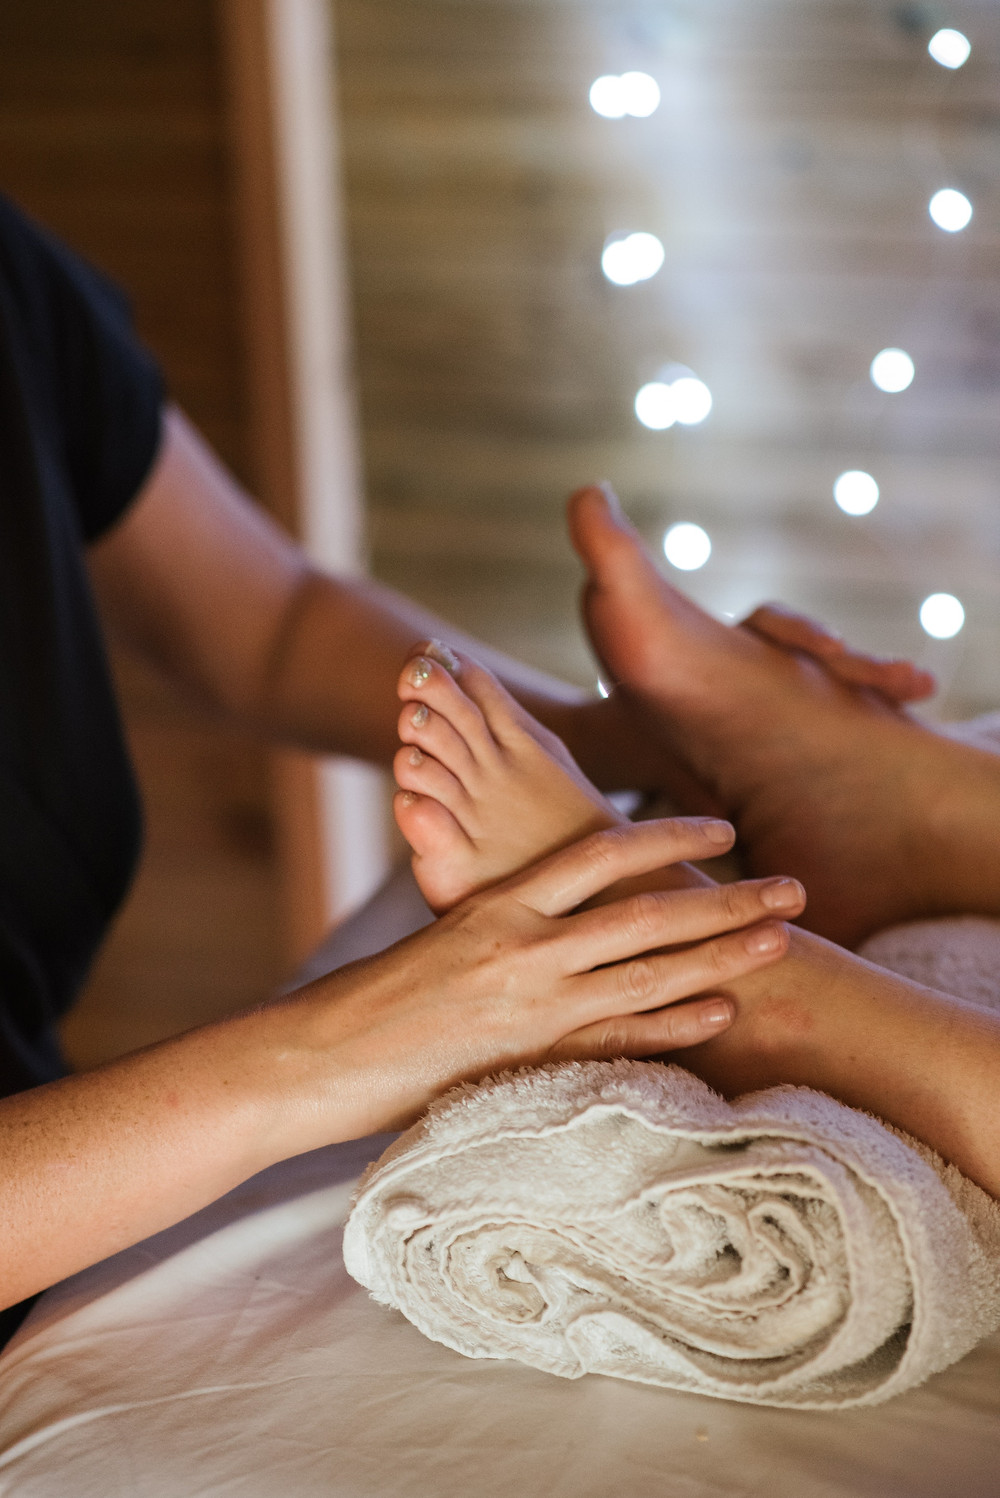 Massage therapist touches the feet of a client on a table. Credit, Anete Lusina.